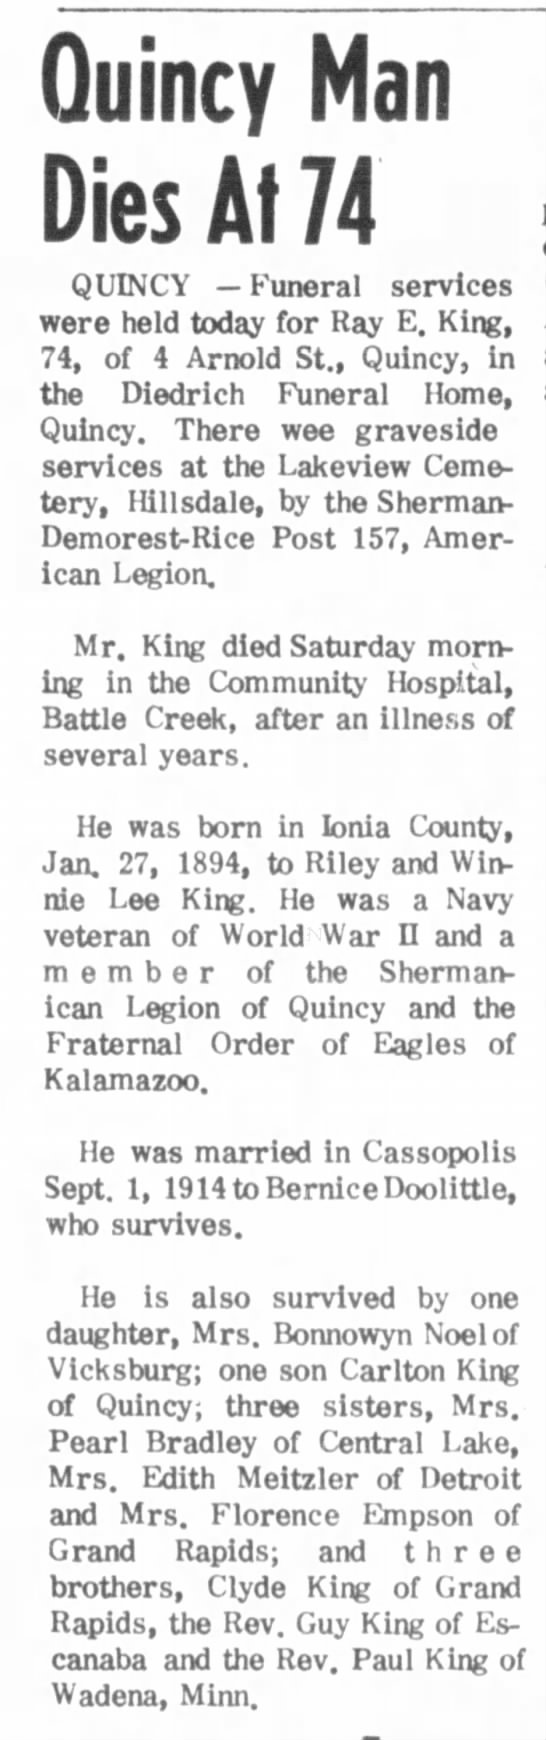 Death of Ray King, brother of Edith Meitzler (Fred's wife) - Oct 1968 -